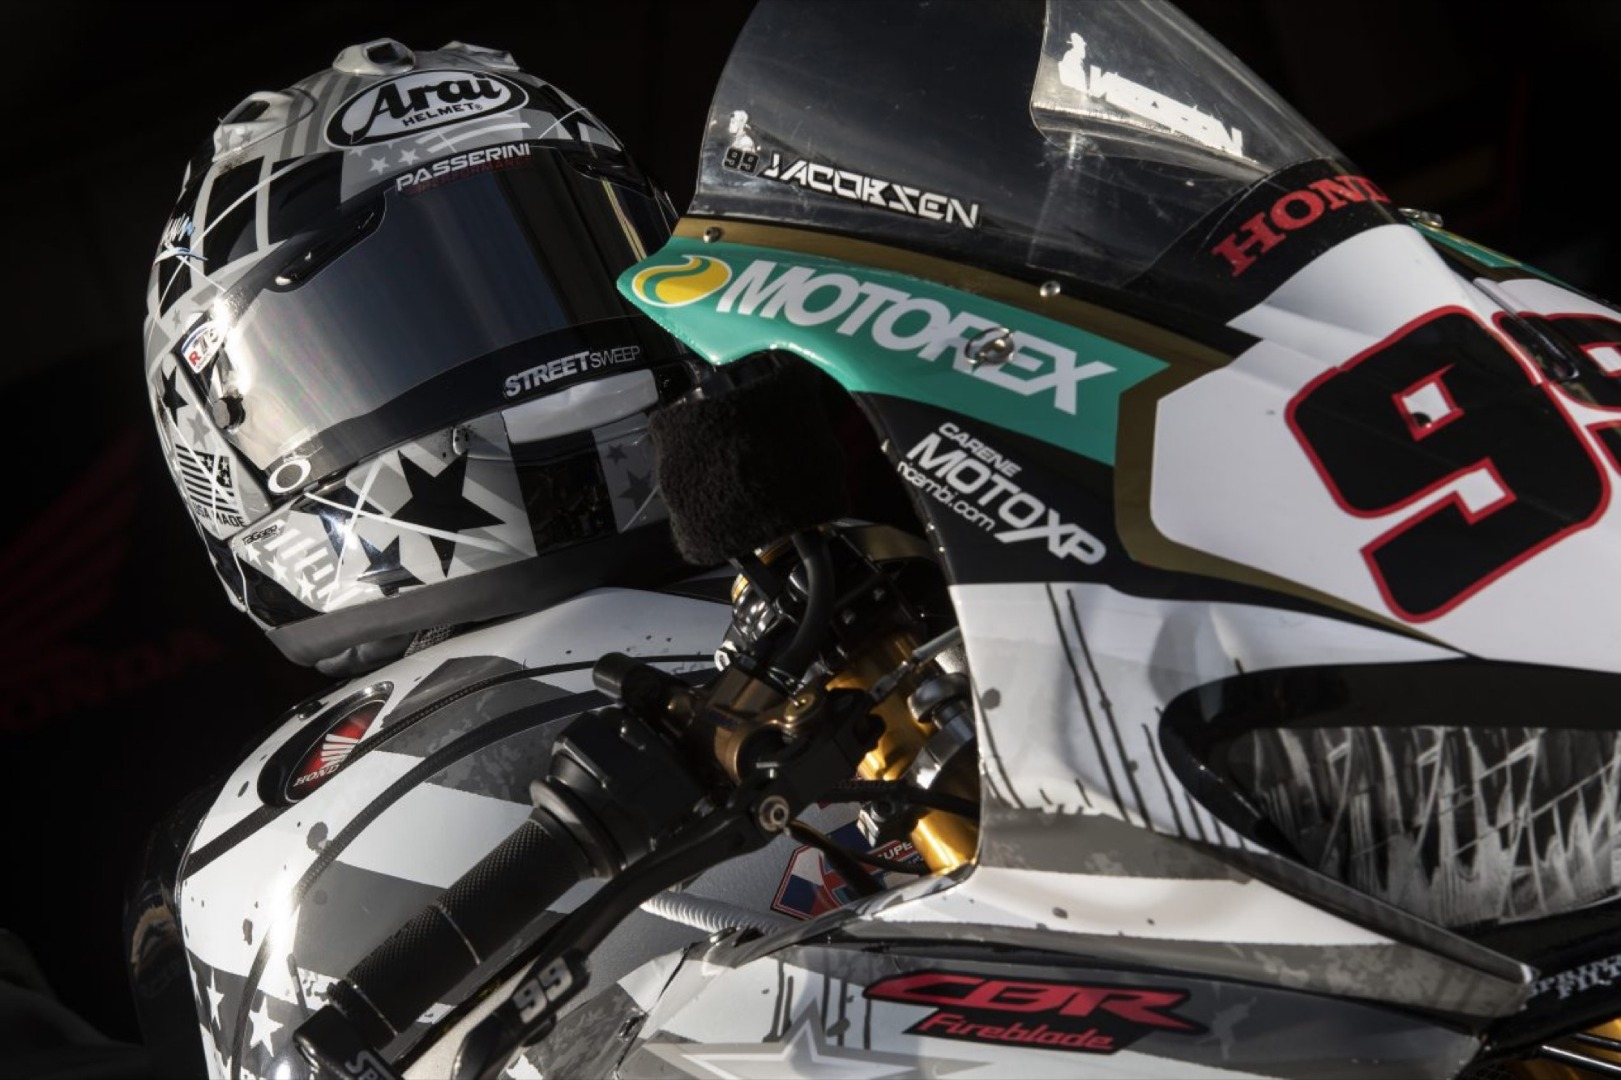 Espectacular decoración homenaje a Nicky Hayden de parte de PJ Jacobsen